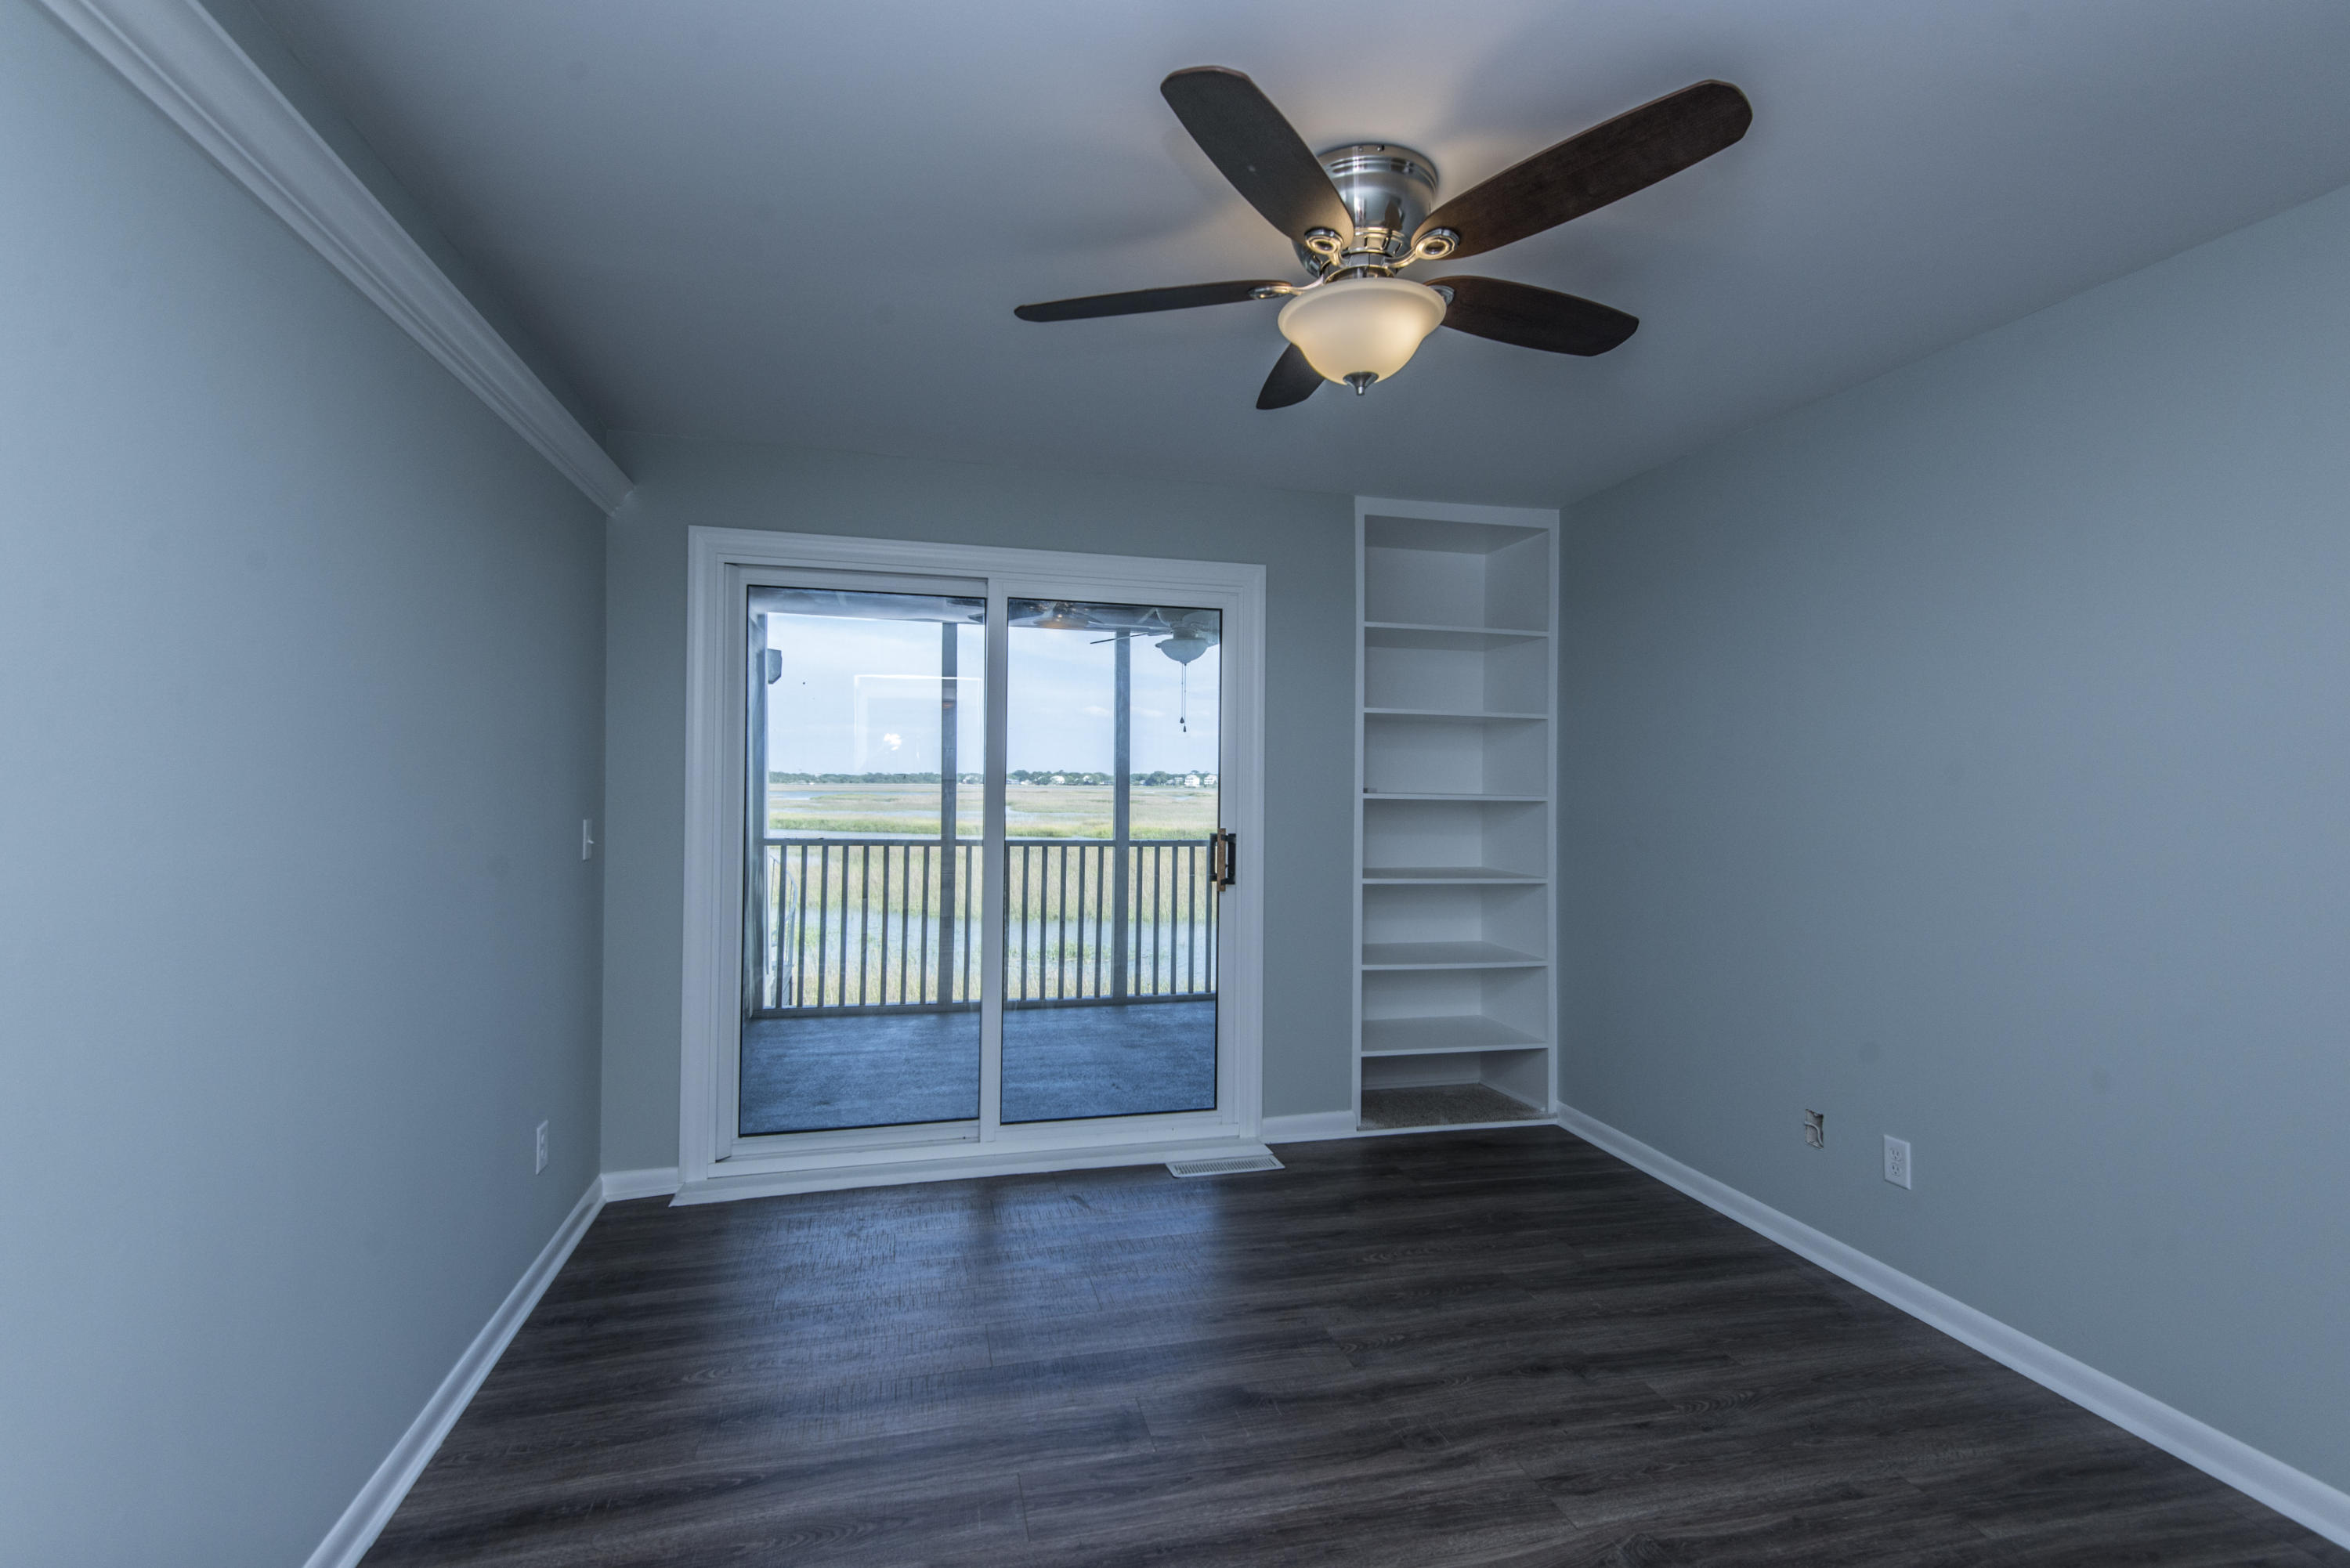 Little Oak Island Homes For Sale - 251 Little Oak, Folly Beach, SC - 11